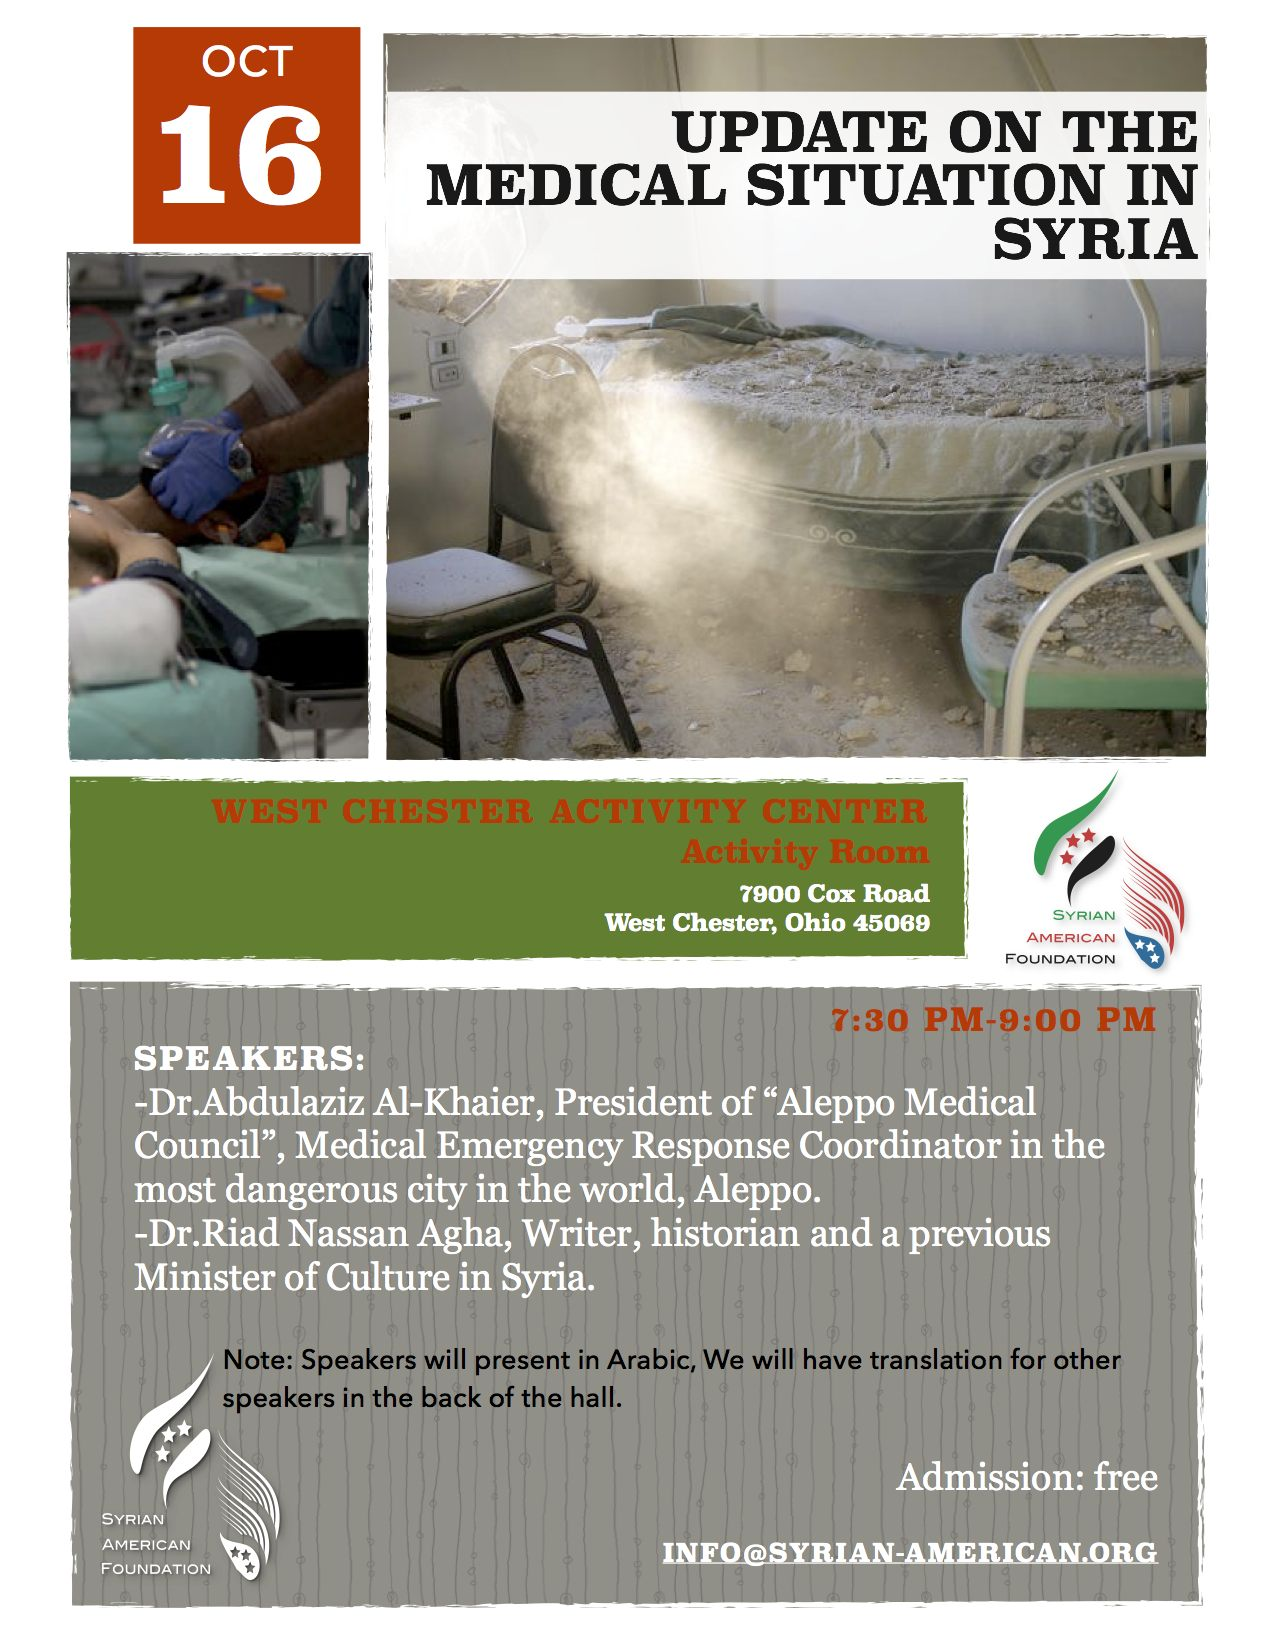 Medical Update in Syria